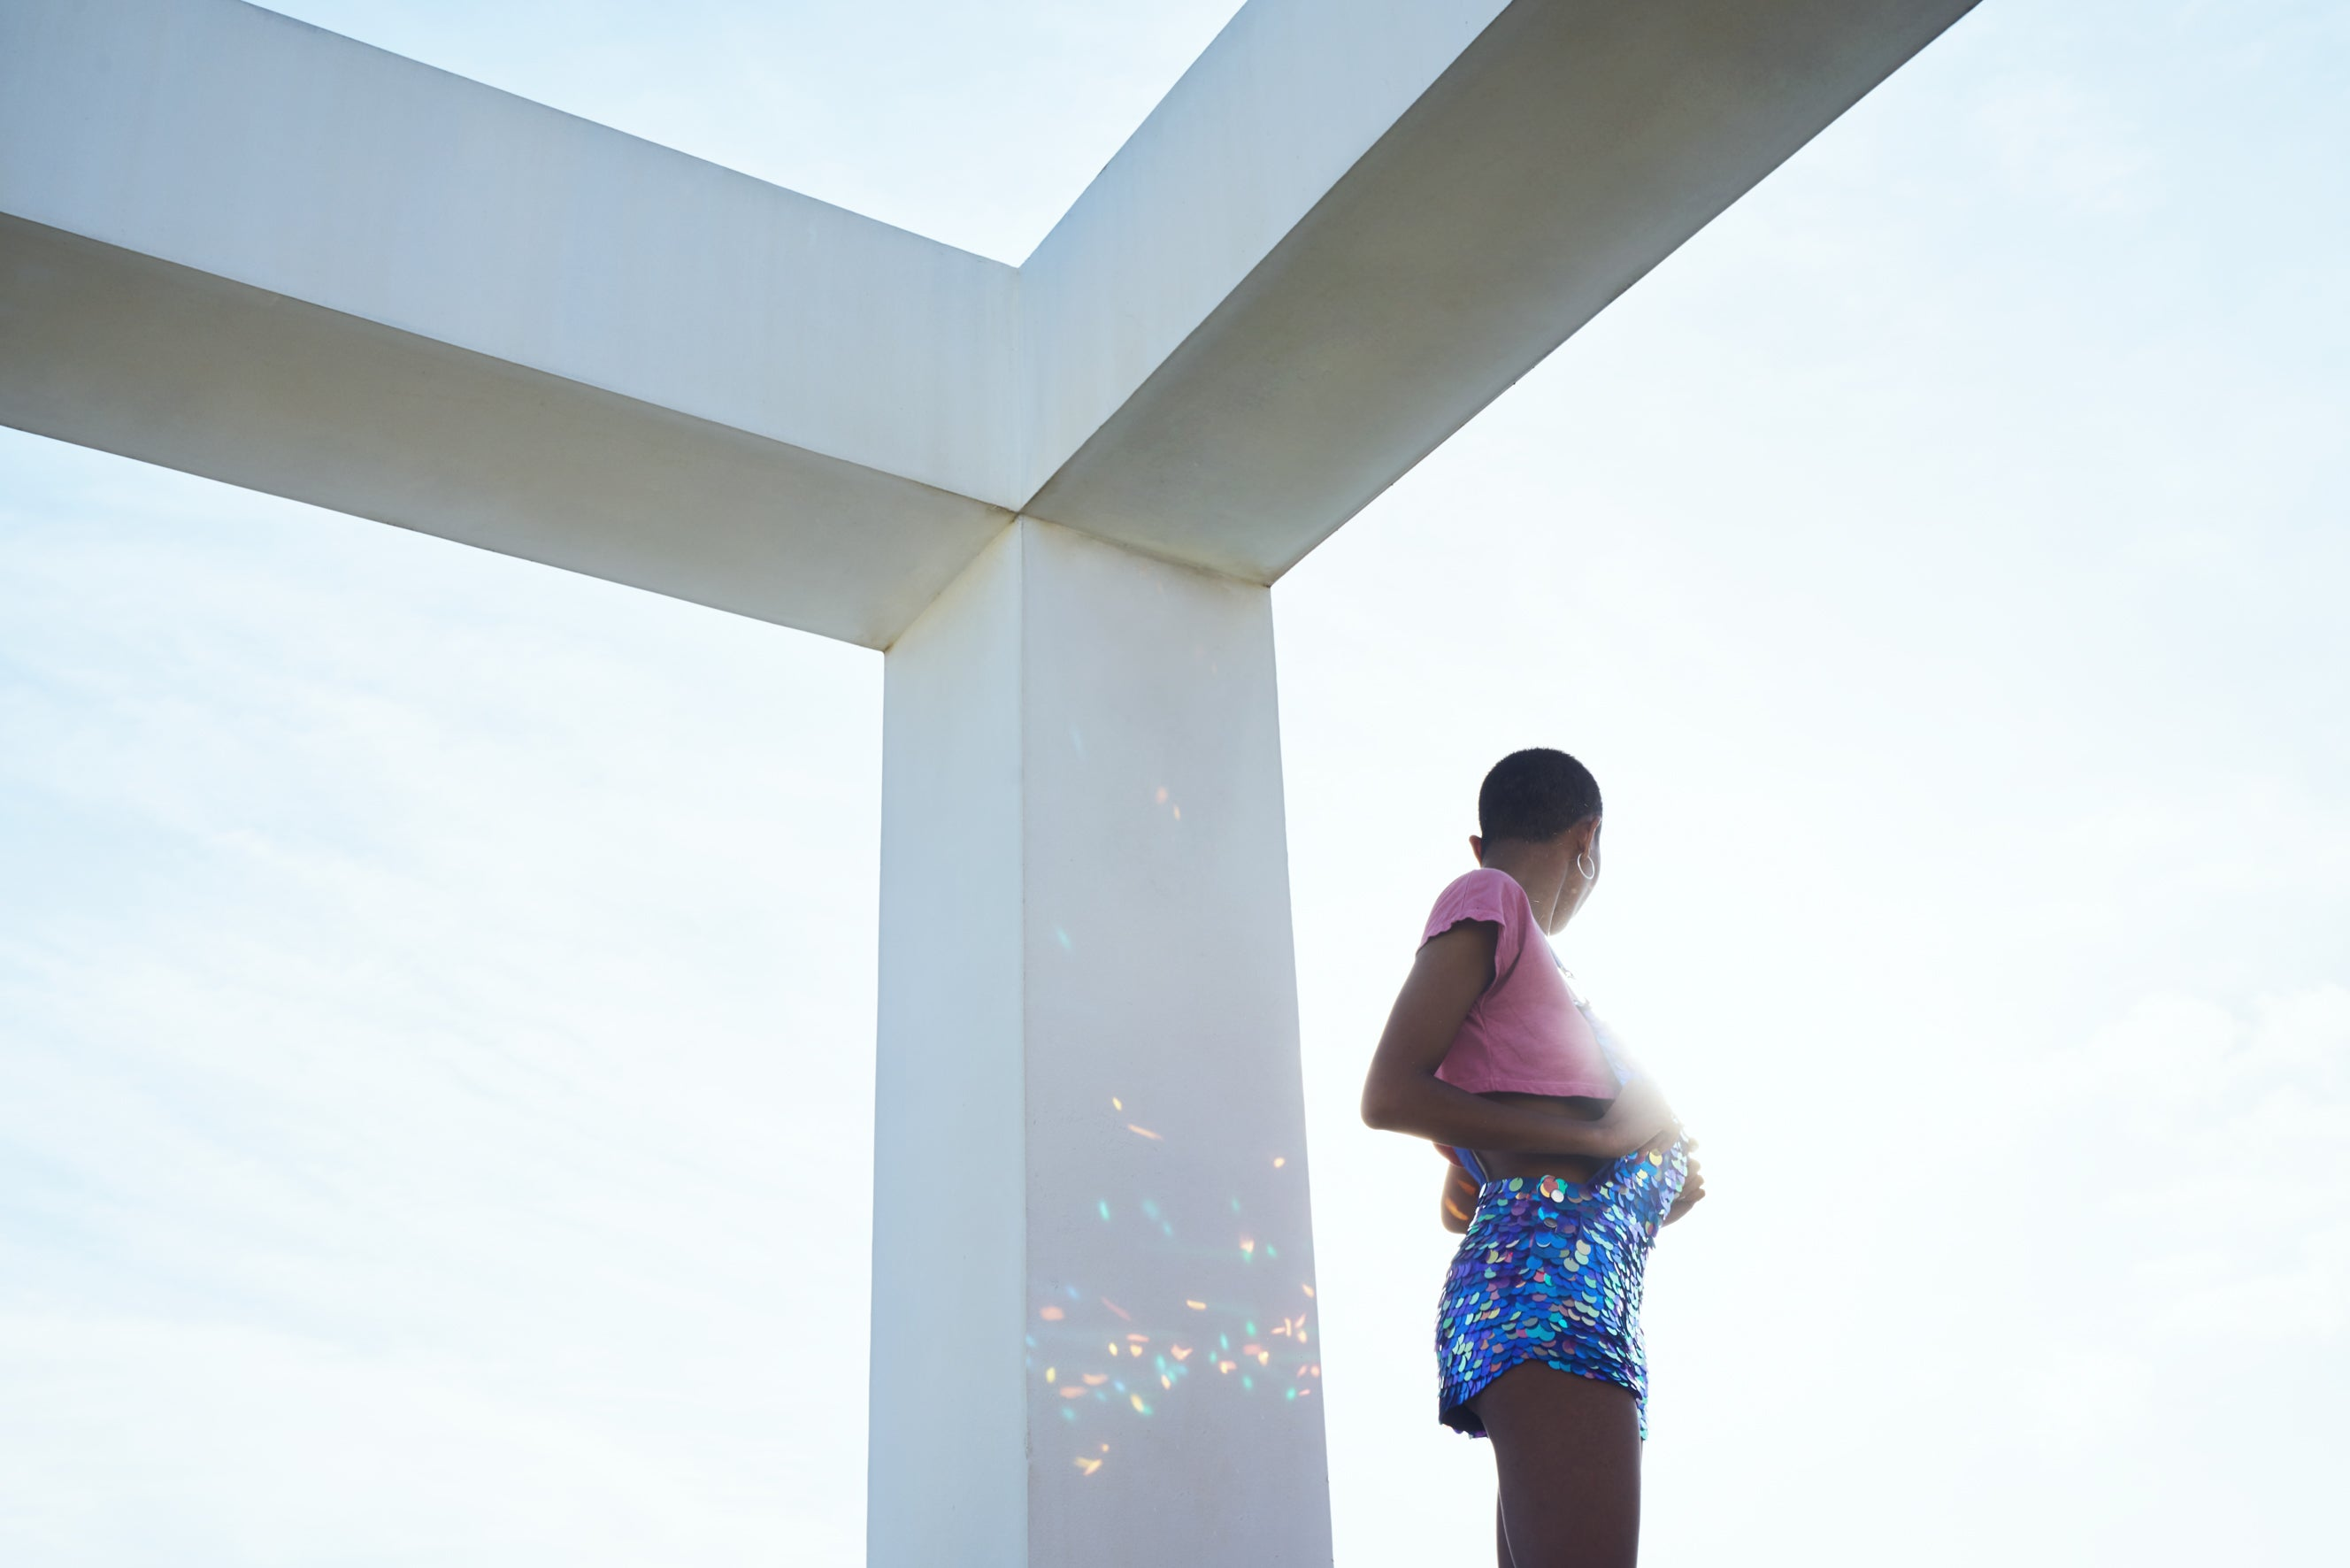 woman wearing a  pink crop top and dungaree shorts covered in large round iridescent blue sequins looks into the blue sky